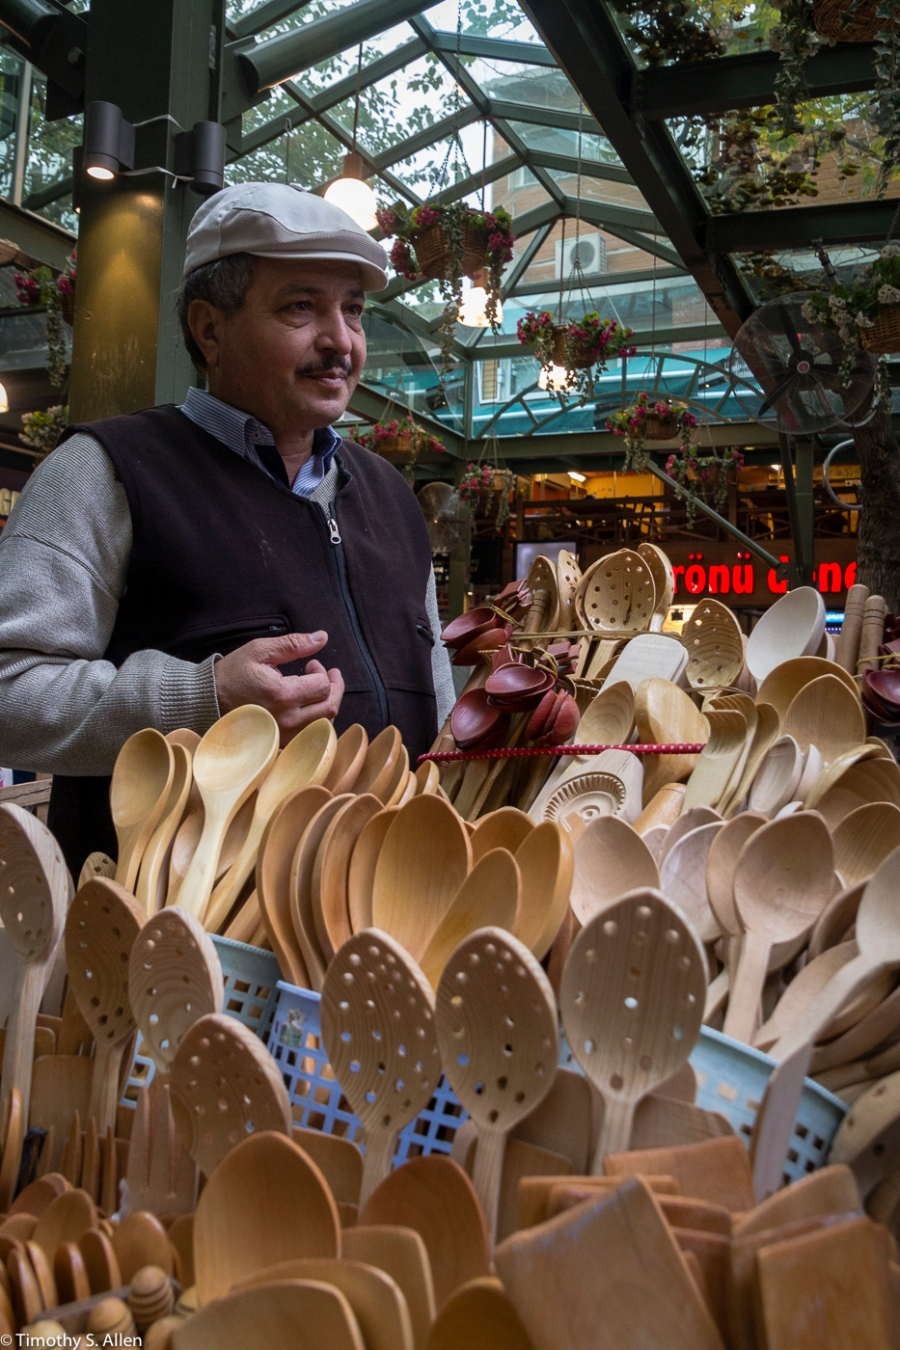 Handmade Wooden Kitchen Utensils Peddler - Bazaar, Izmir, Turkey, December 11, 2015